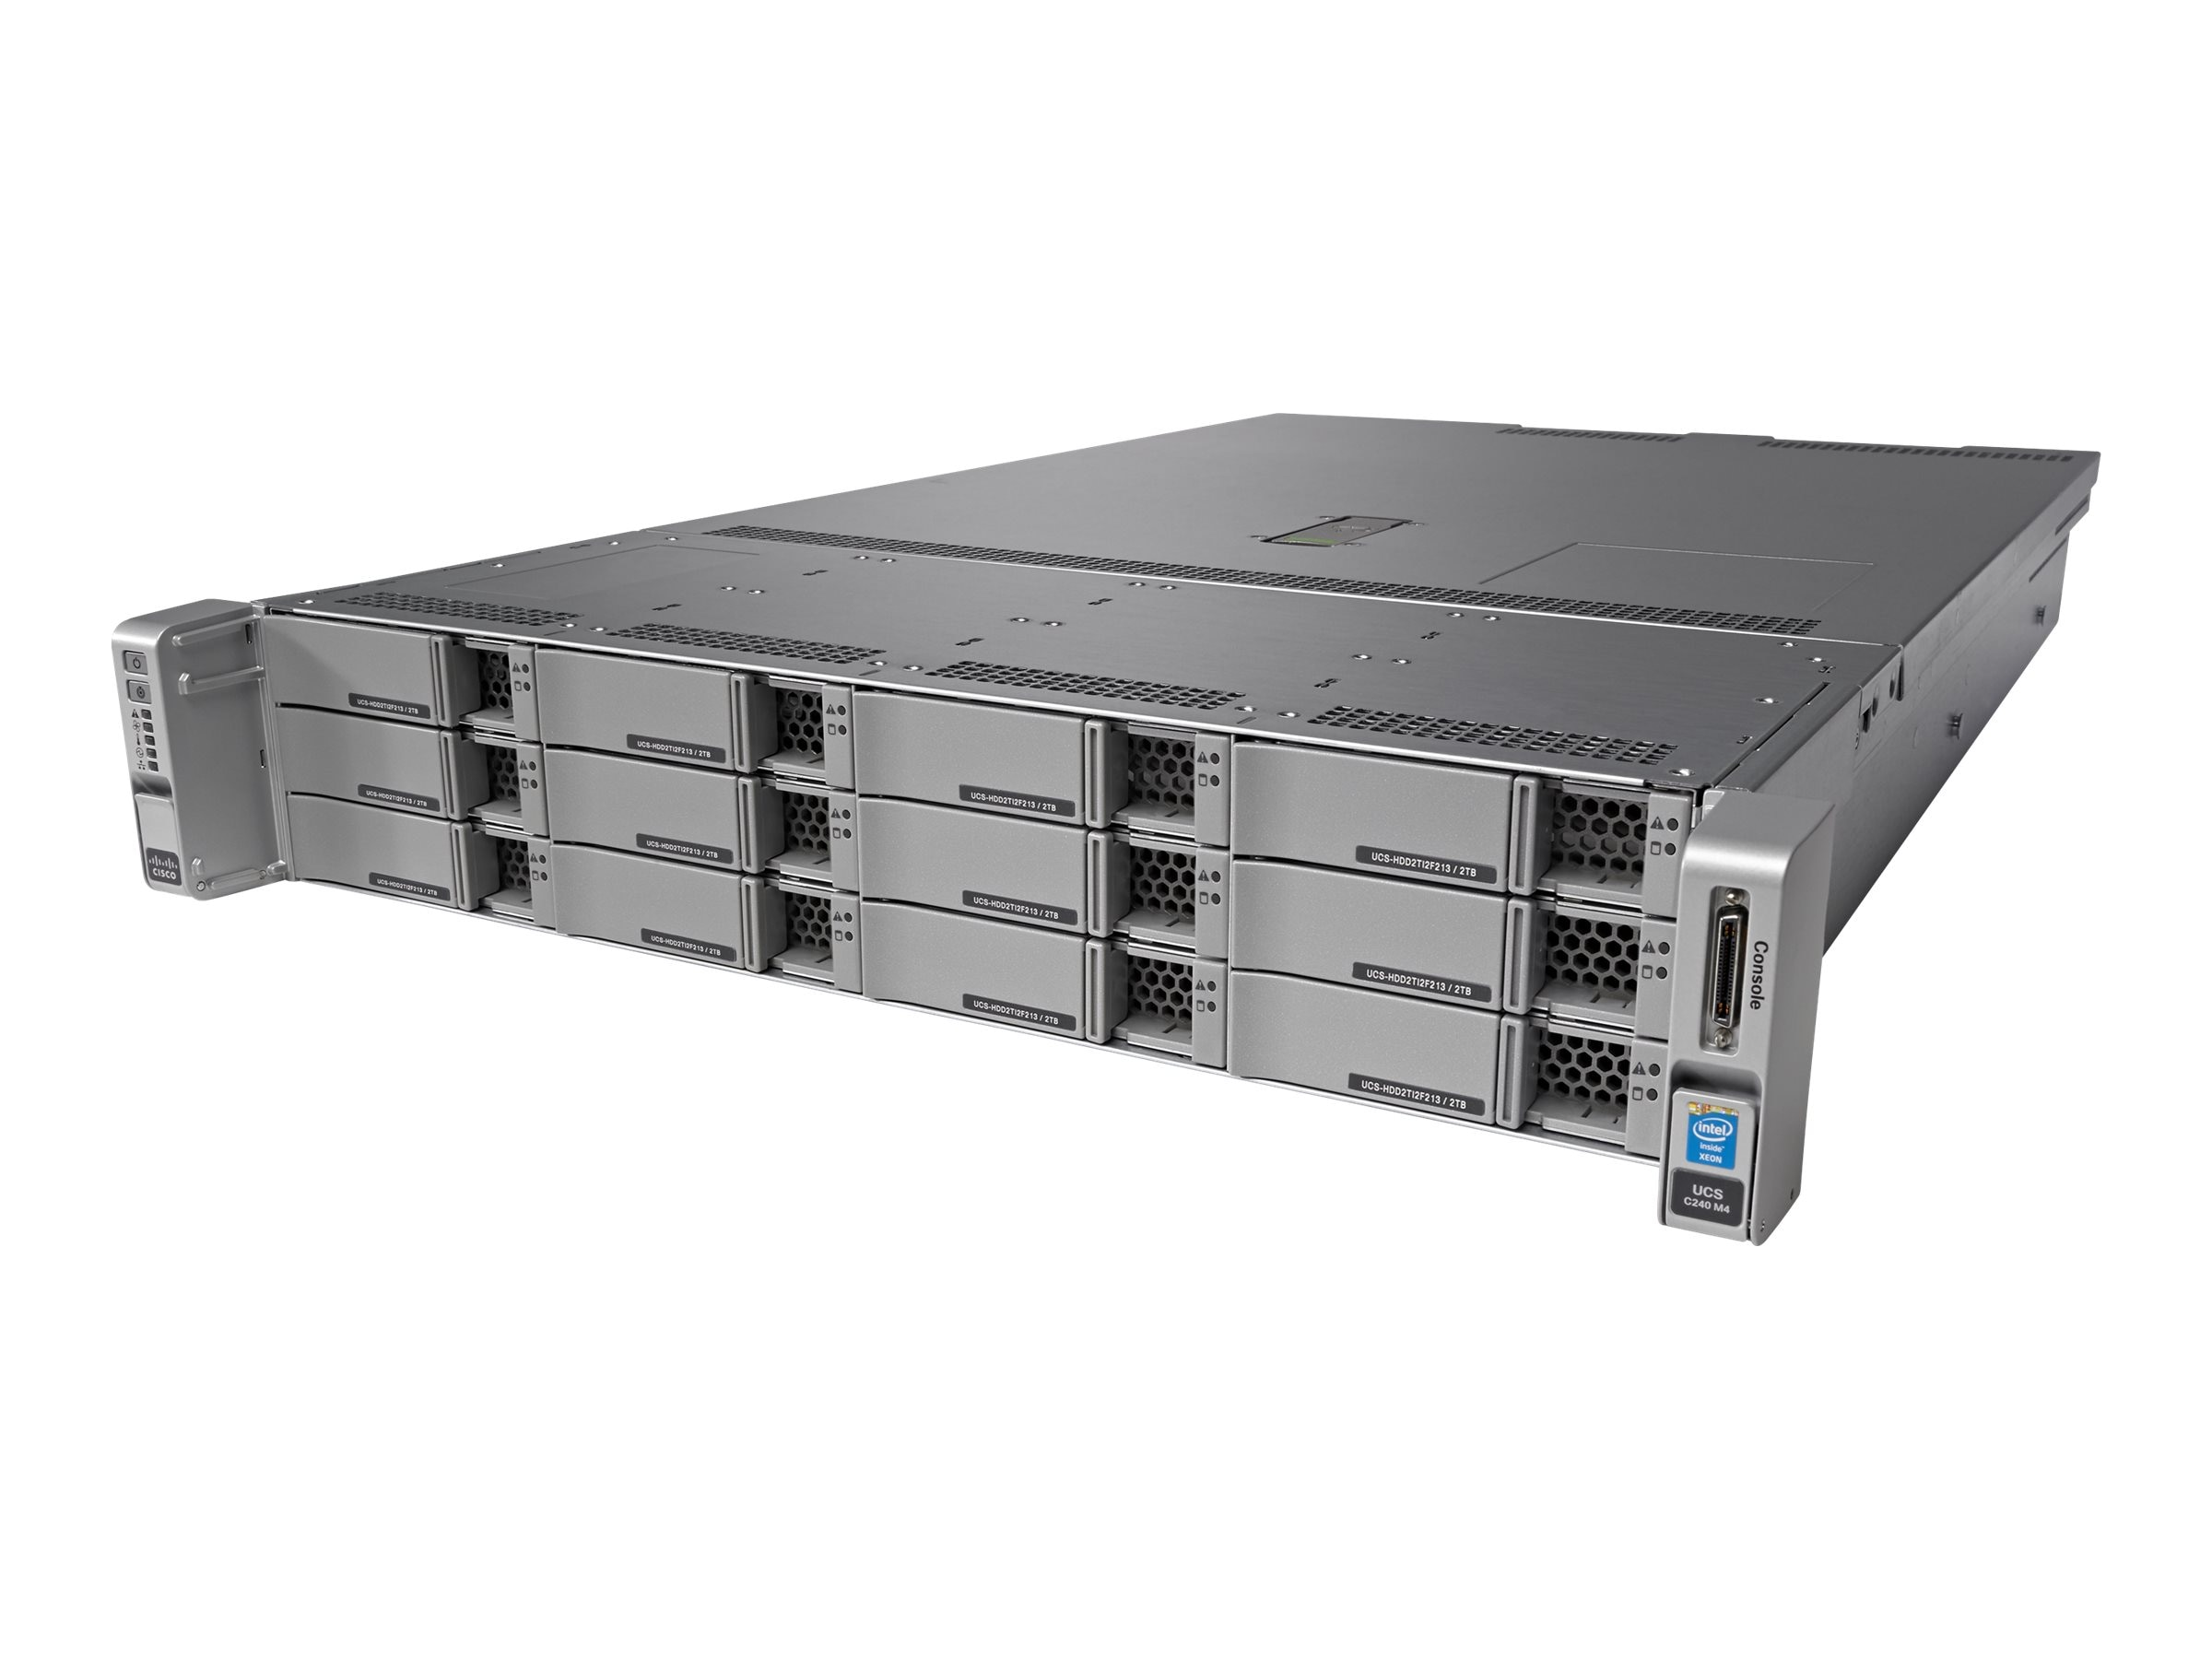 Cisco UCS-SP-C240M4L-S2 Image 1